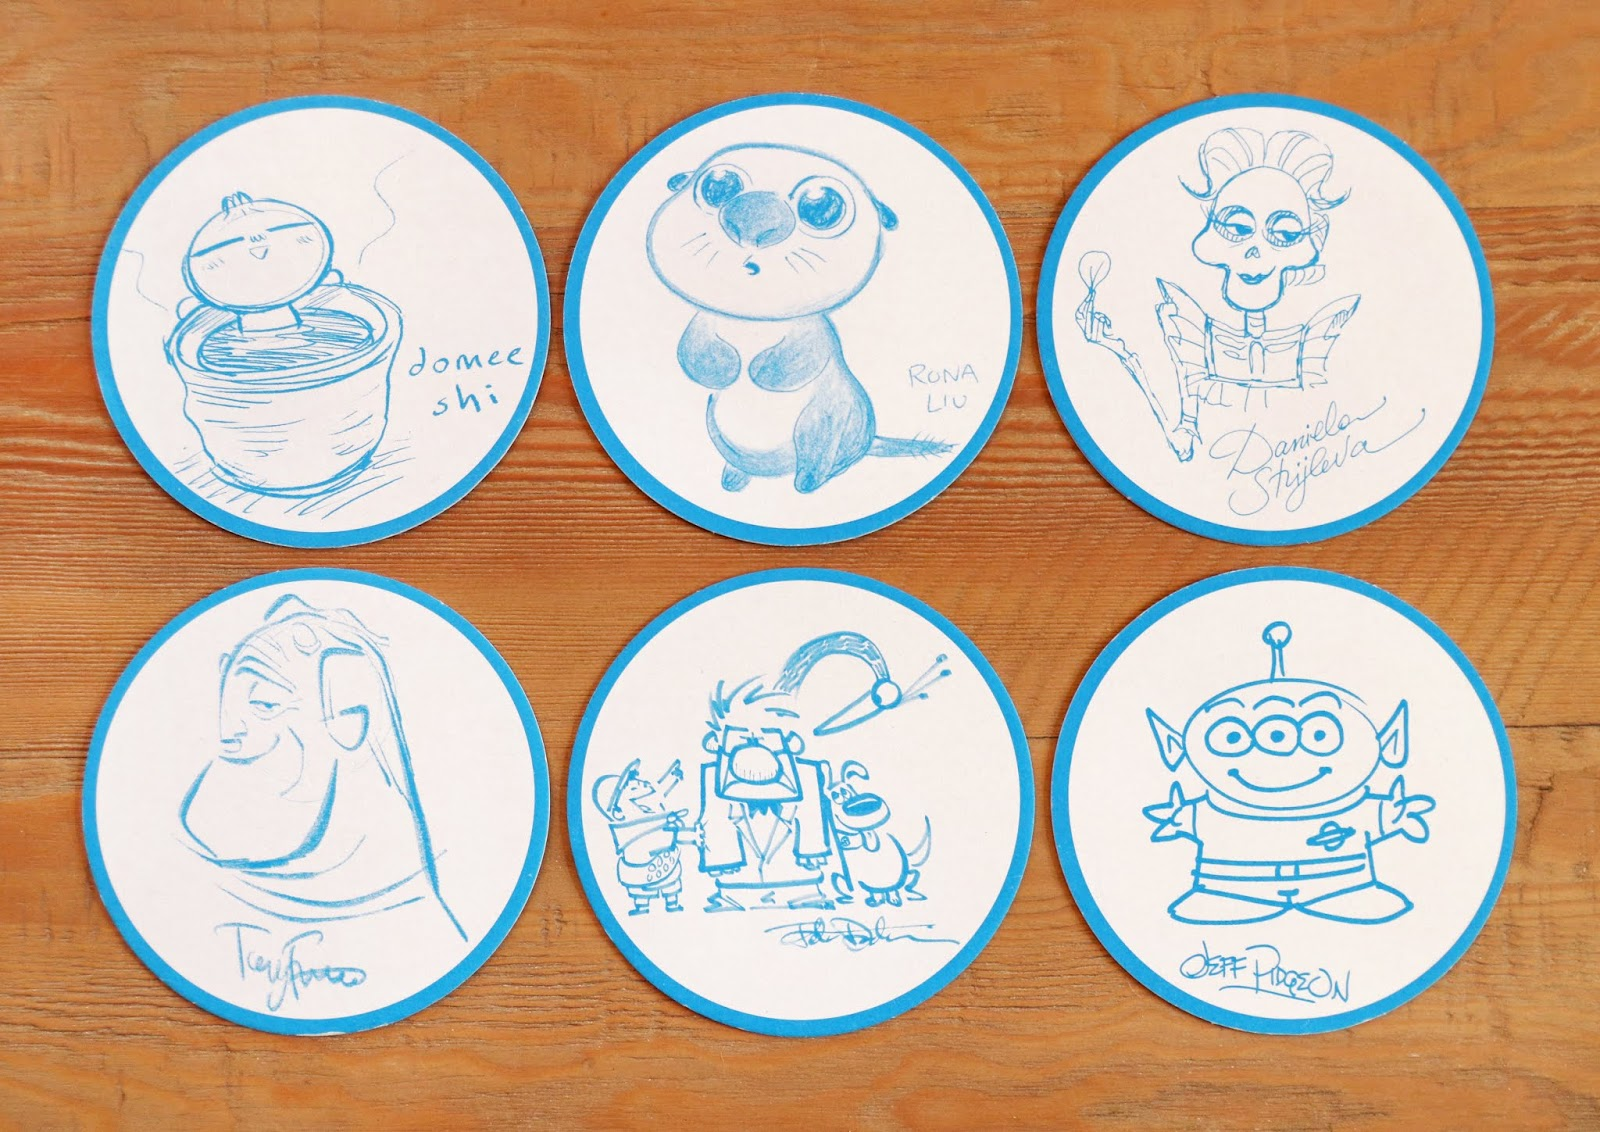 Pixar Pier Lamplight Lounge Coasters